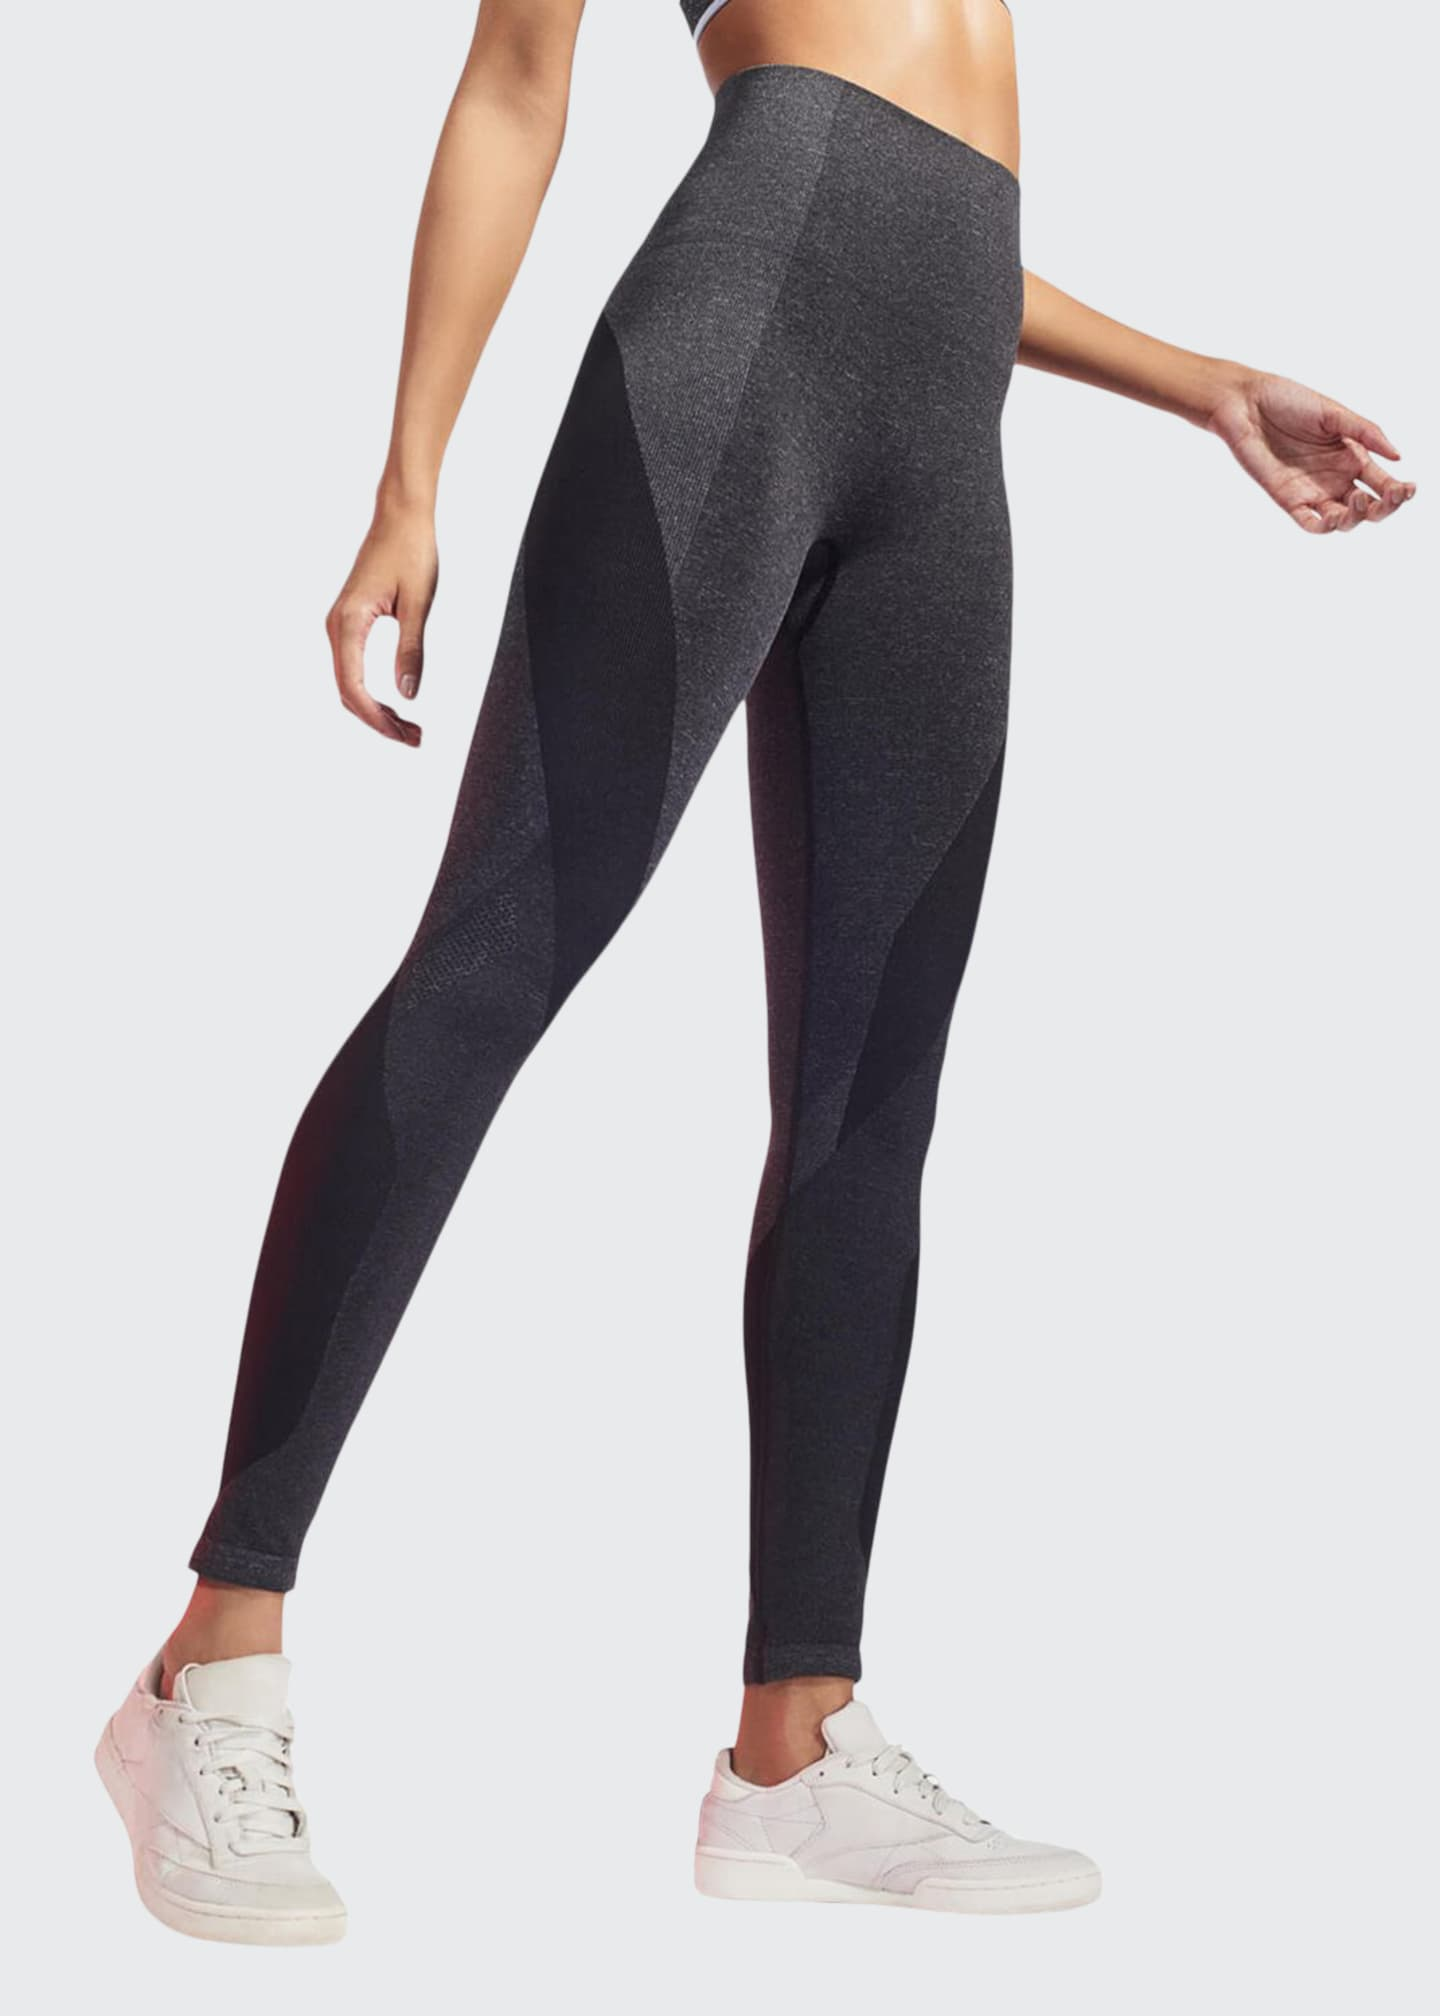 LNDR Launch Performance Leggings